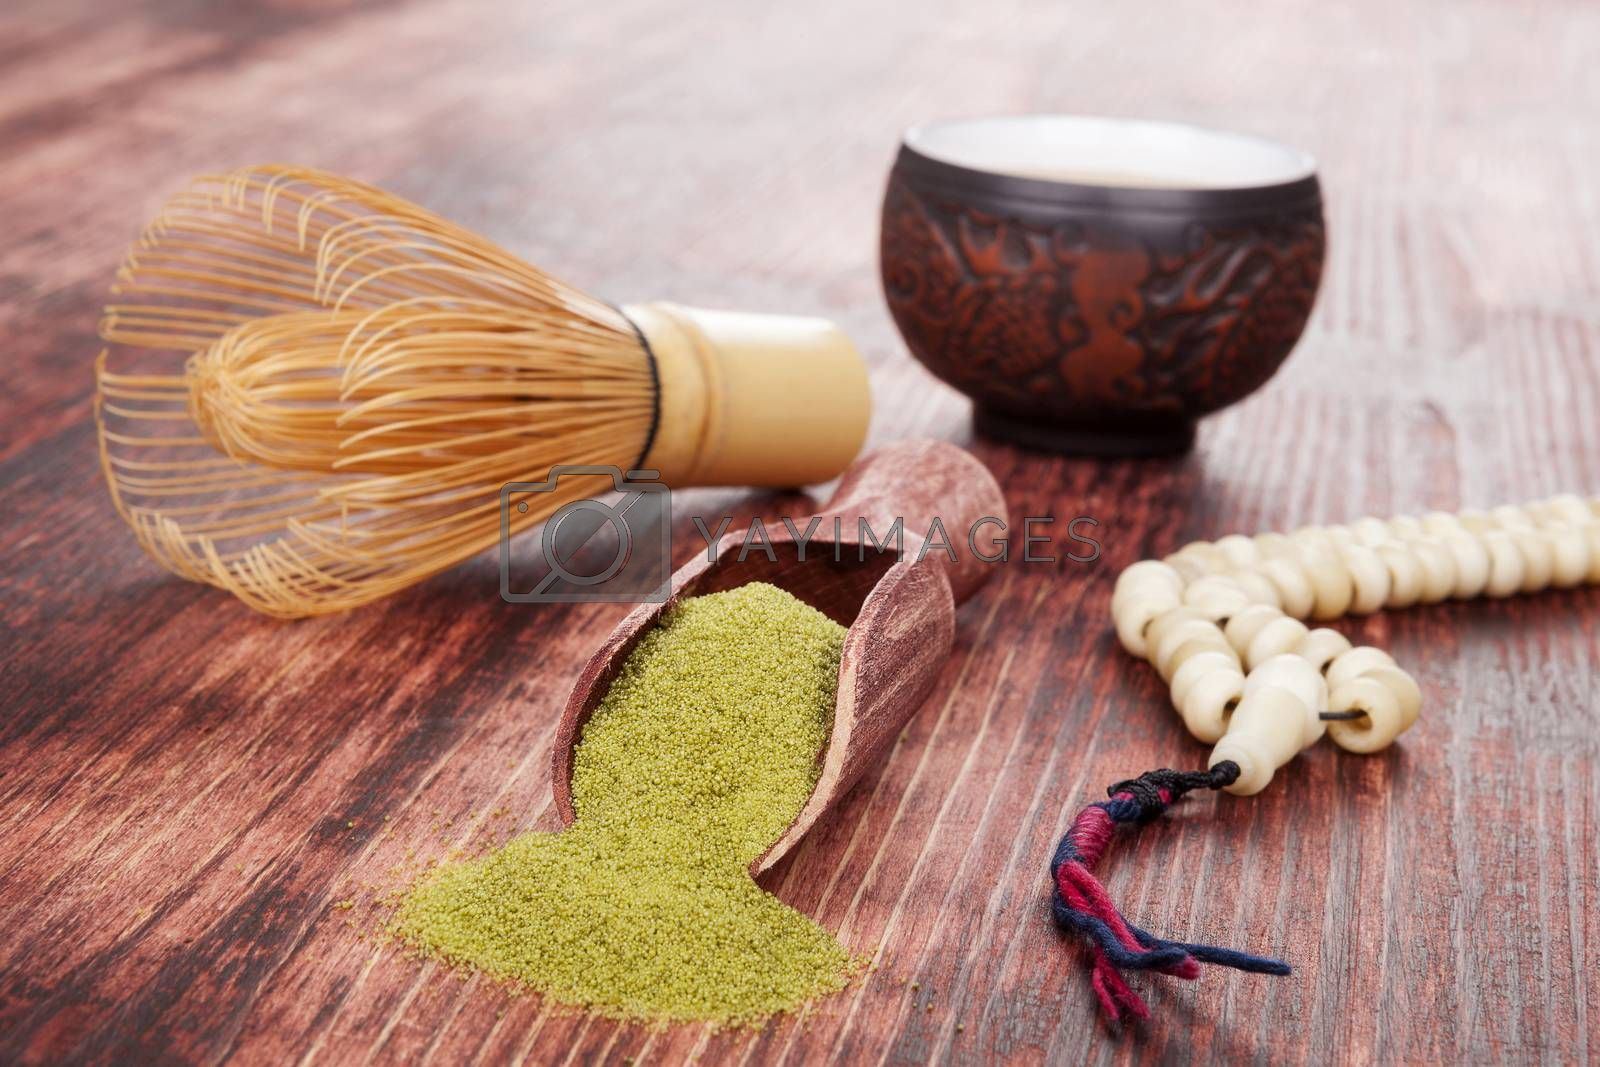 Traditional tea ceremony. Powdered green tea matcha, hot tea in ceramic cup, bamboo chasen and buddhist necklace on brown wooden background.